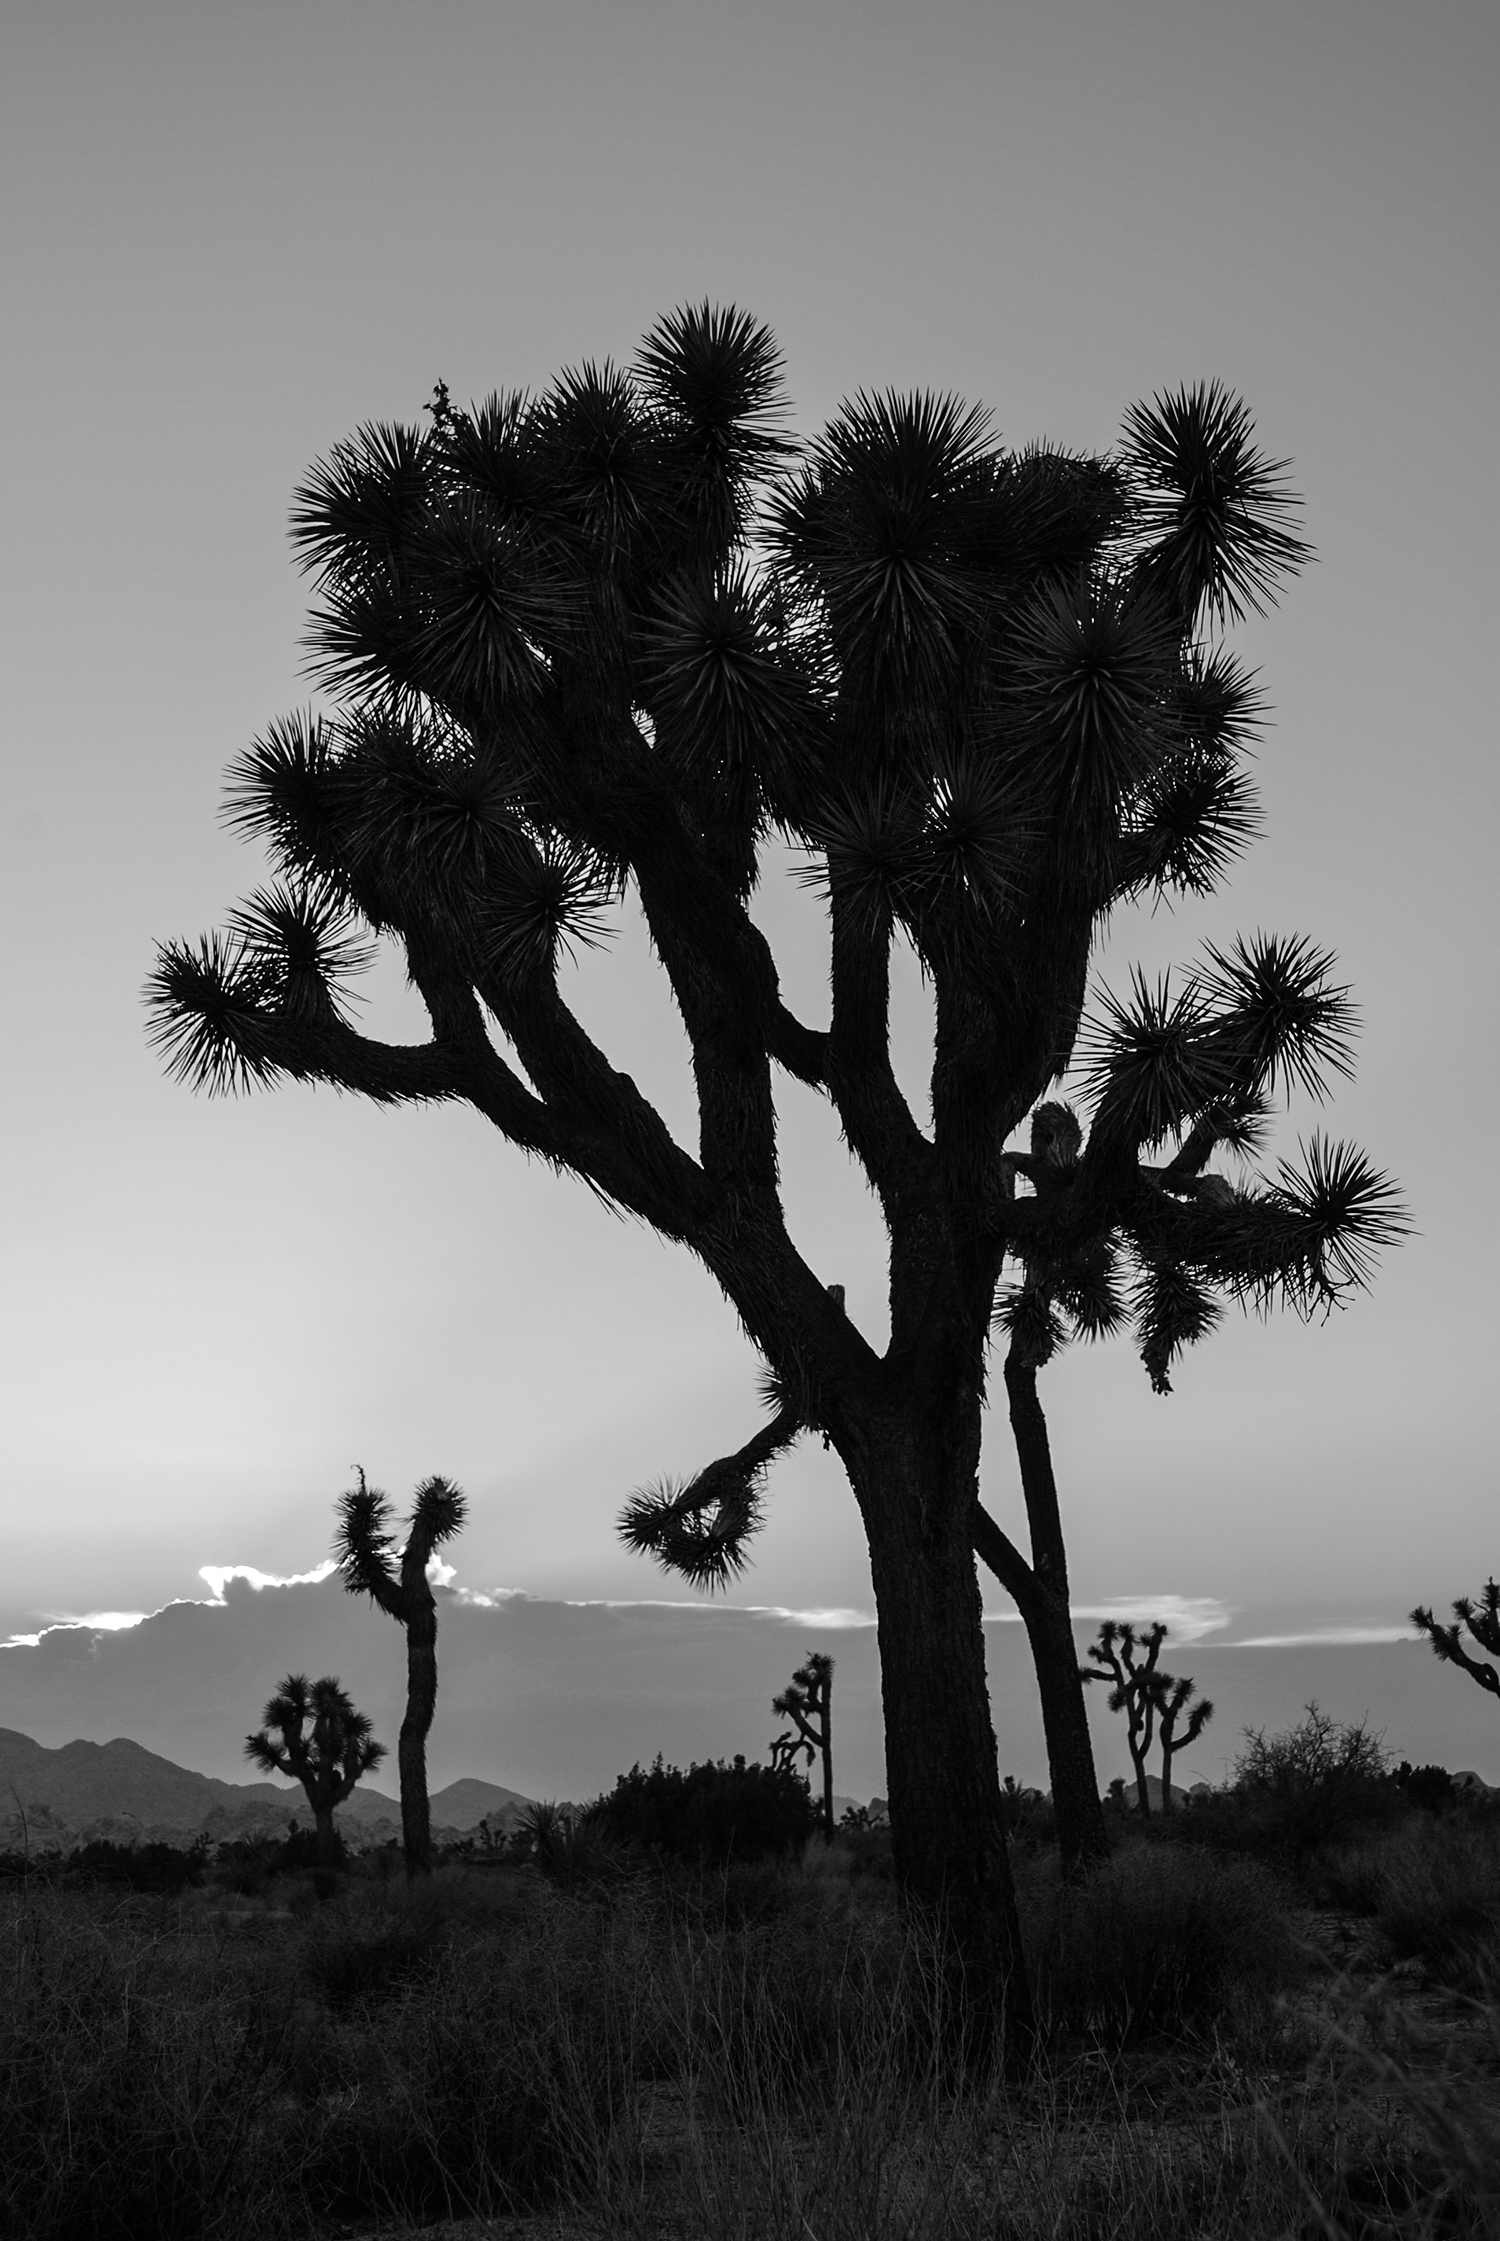 With the arrival of night, we left Joshua Tree. I have never experienced a landscape such as it.